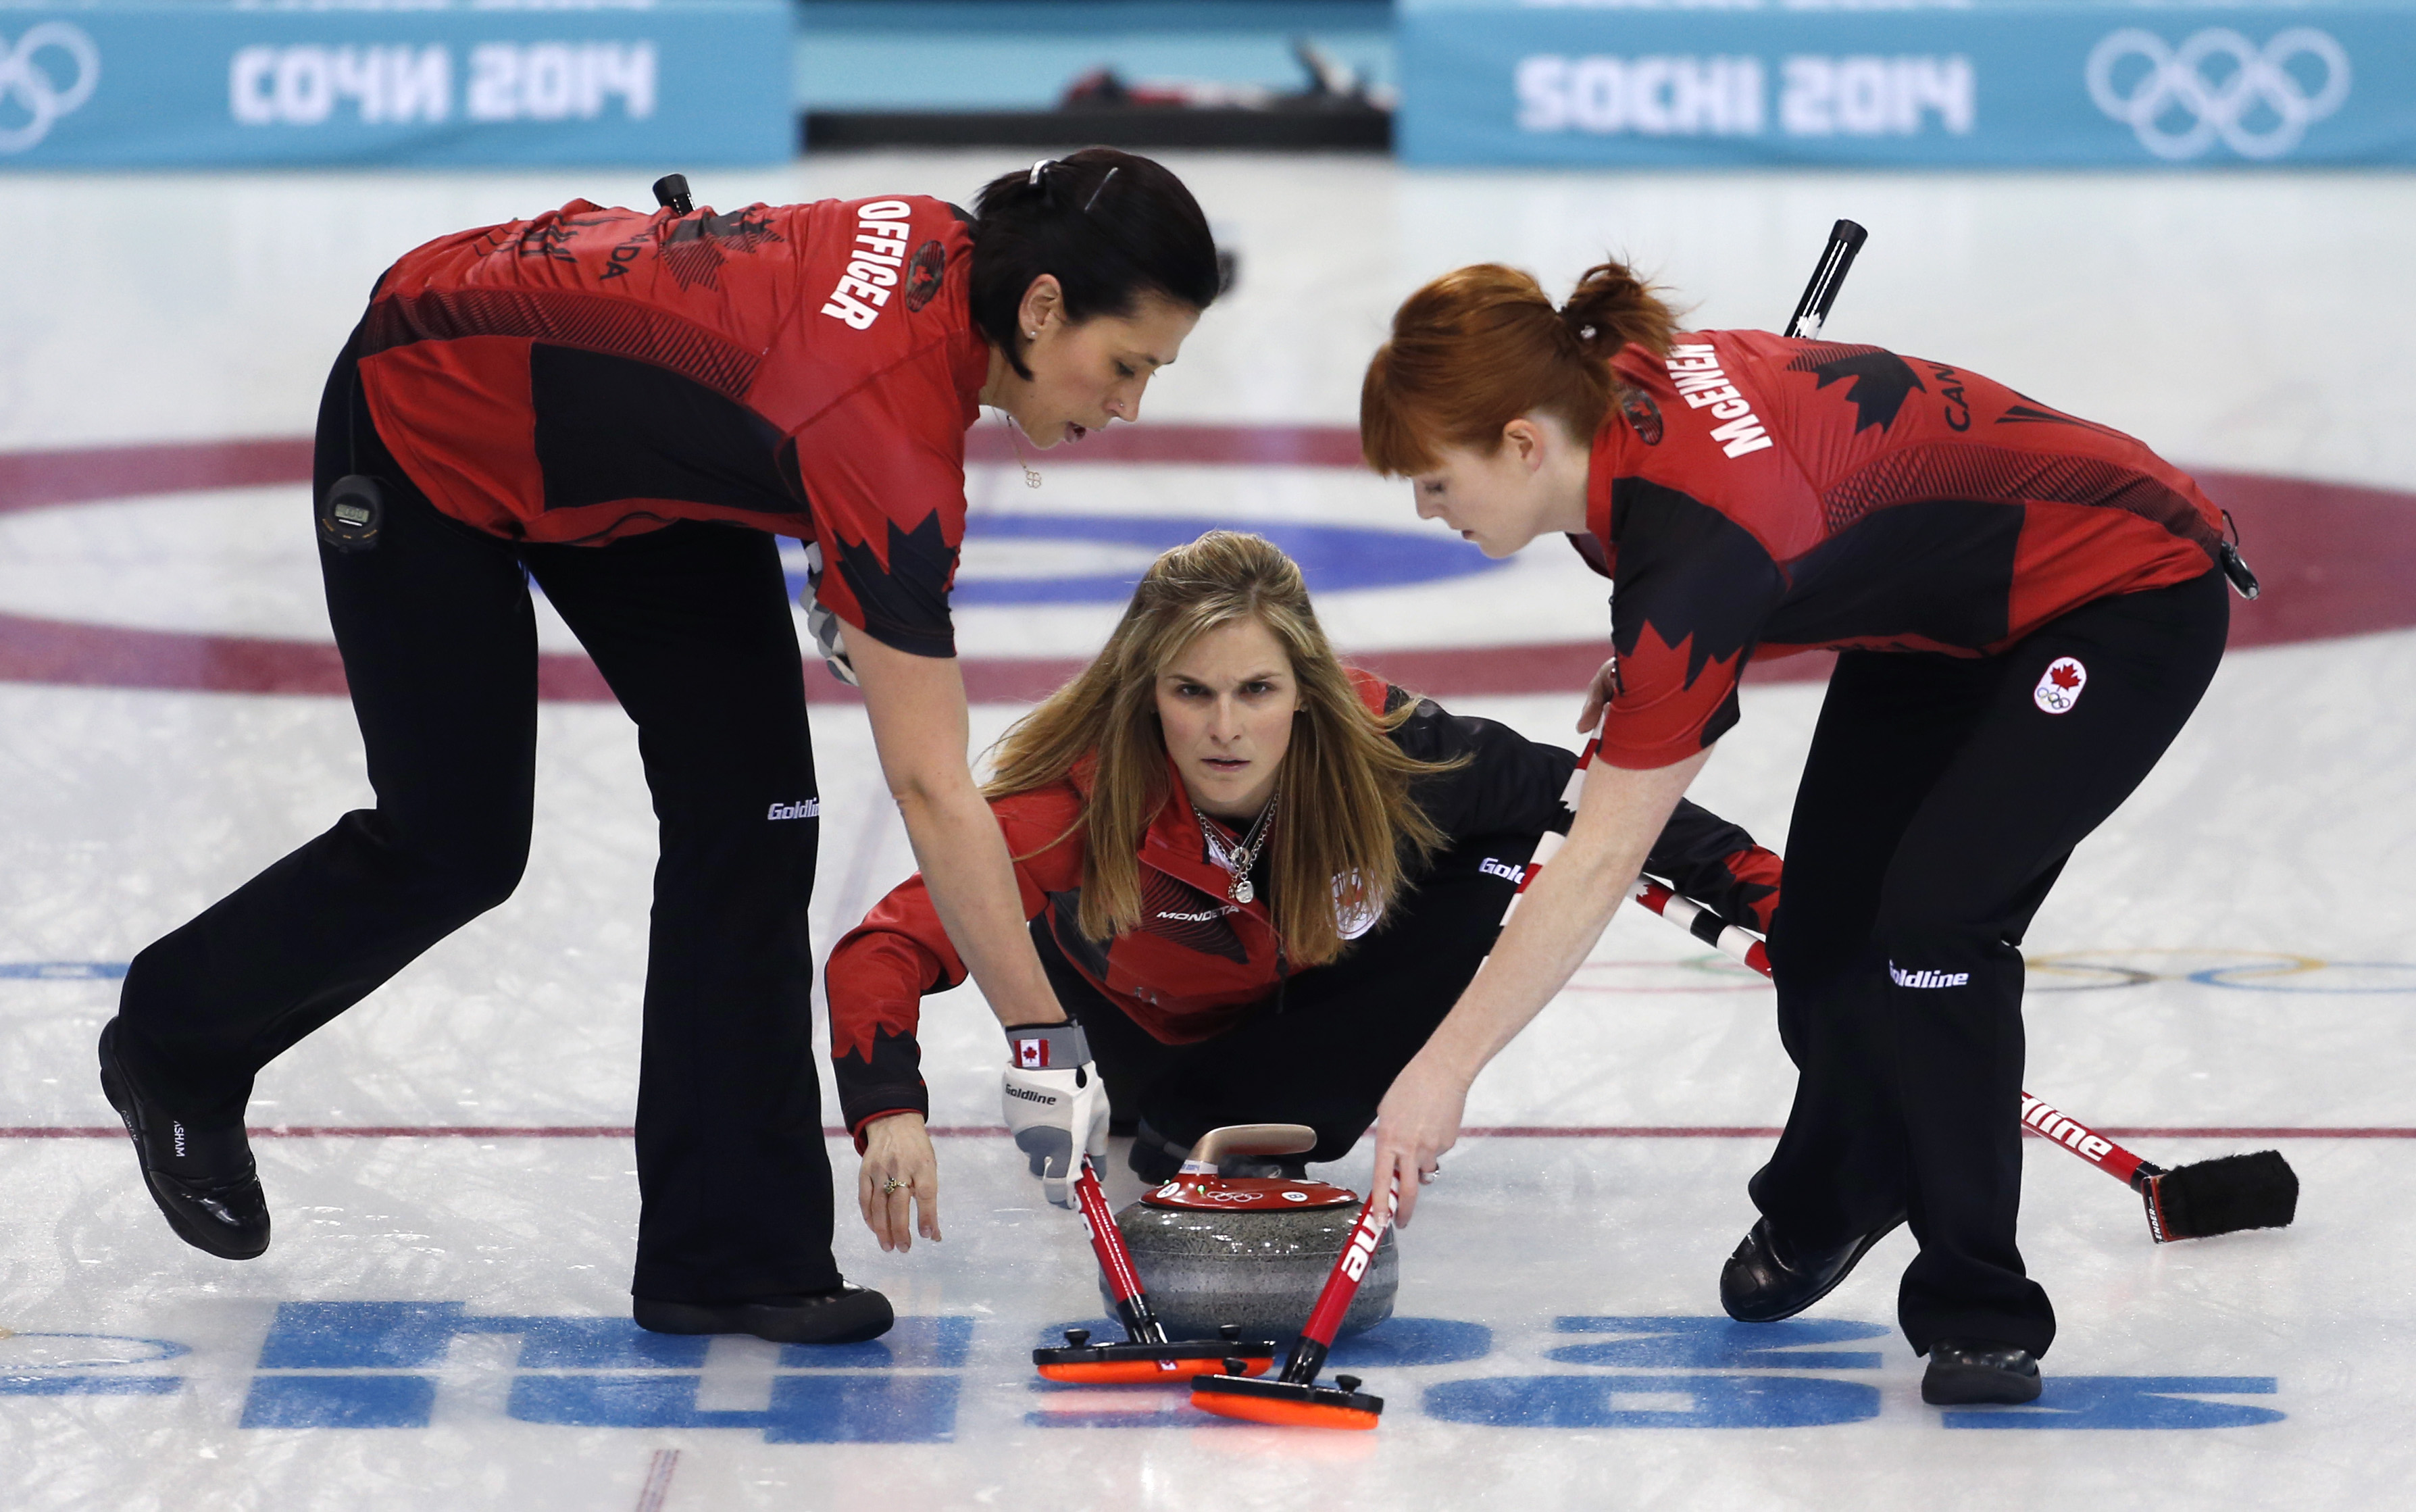 Canada's skip Jennifer Jones, center, delivers the rock to her sweepers Jill Officer, left, and Dawn McEwen during women's curling competition against Japan at the 2014 Winter Olympics, Saturday, Feb. 15, 2014, in Sochi, Russia. (AP Photo/Robert F. Bukaty)